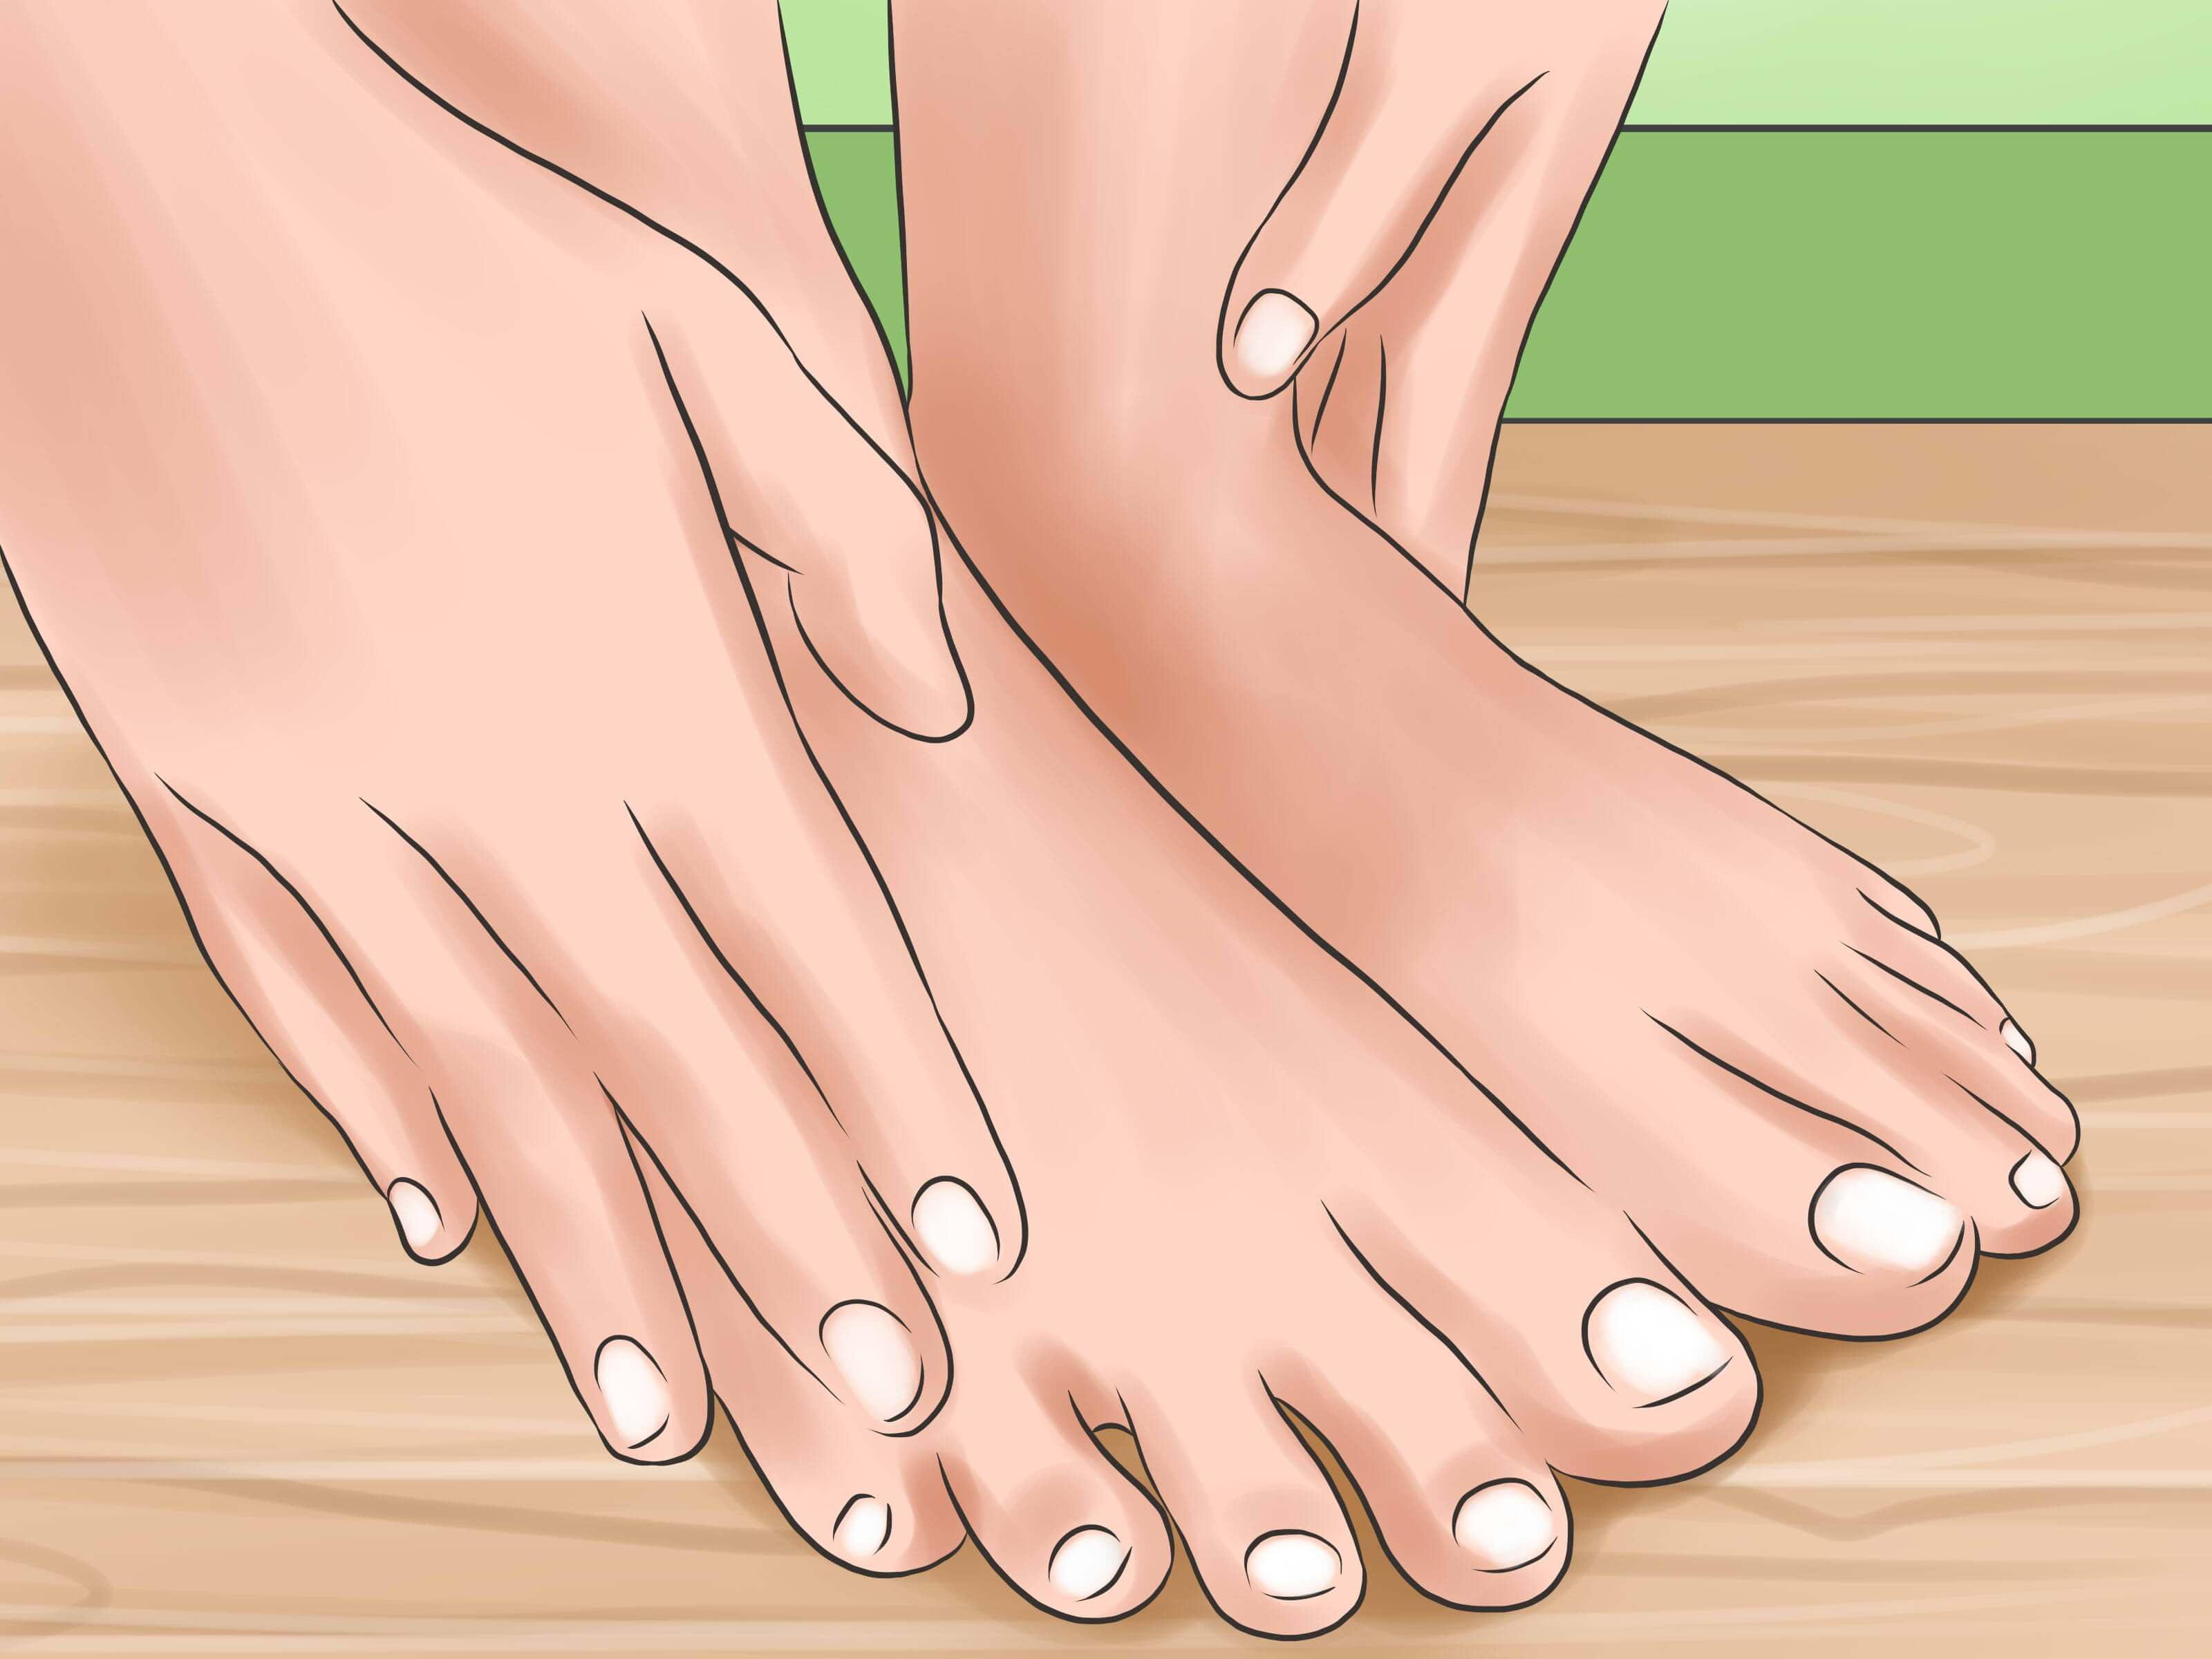 6 Foot Care Tips So They Always Look Impecable